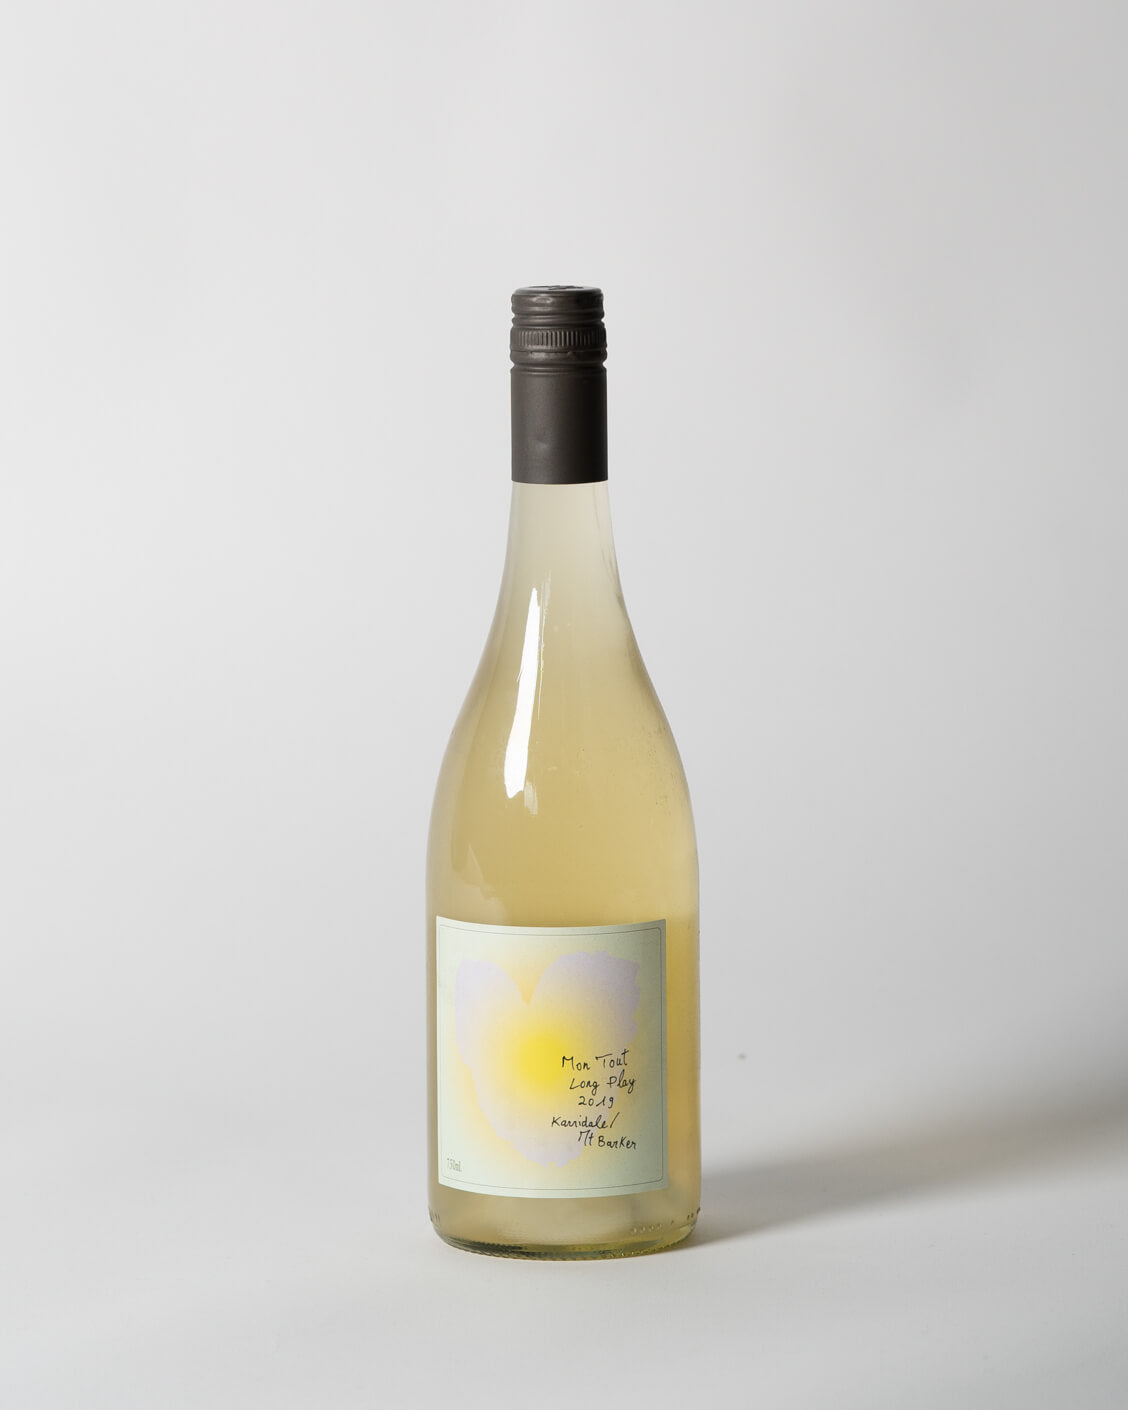 Mon Tout | Long Play White Blend | 2019 | Heroes & Comrades | Perth Delivery